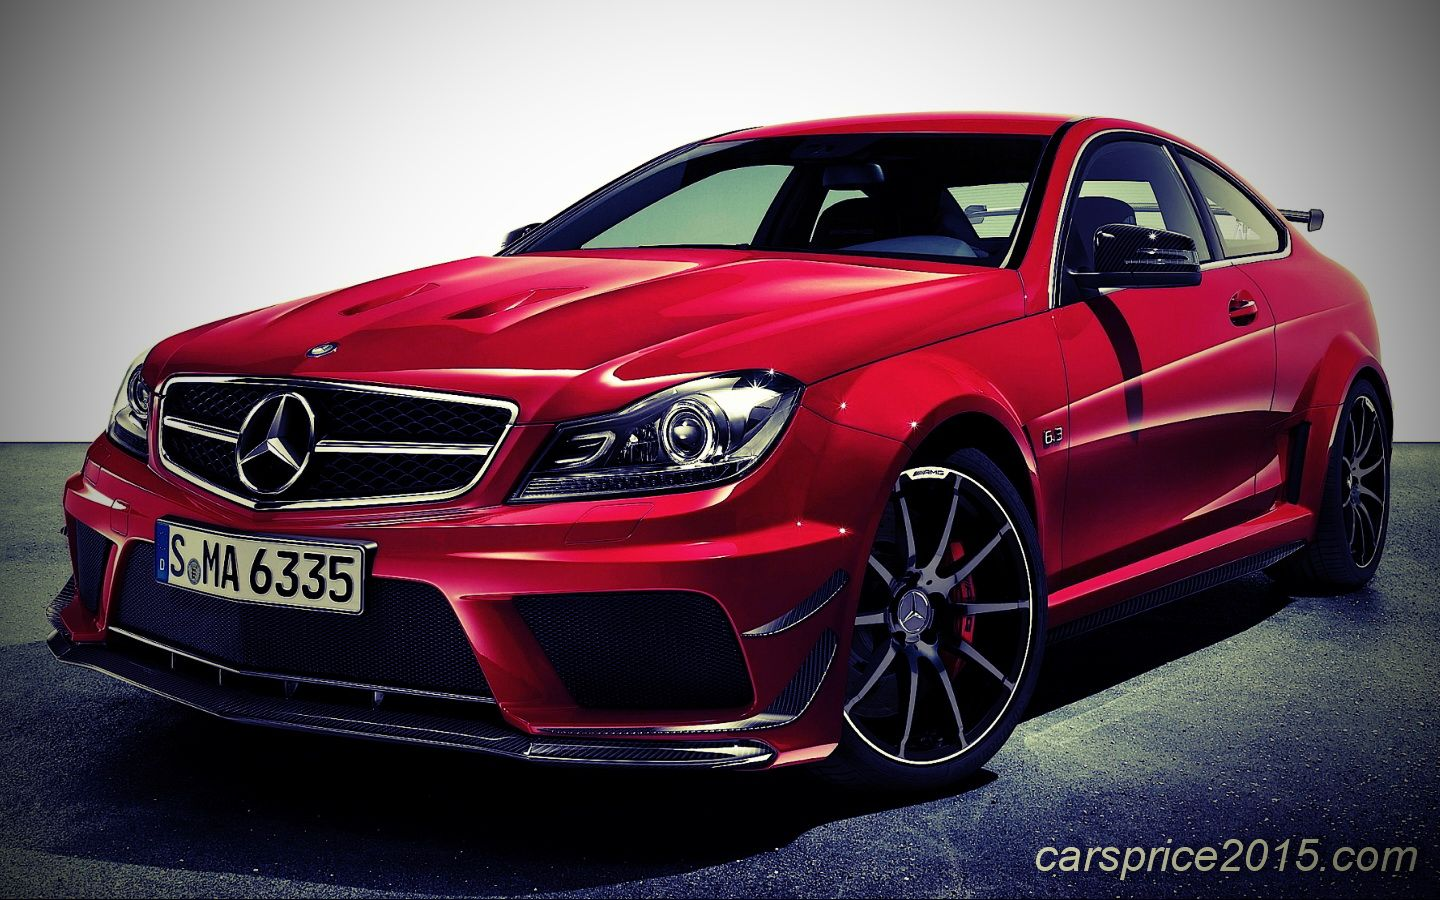 2015 Mercedes Benz C63 Amg Price And Release Date With Images